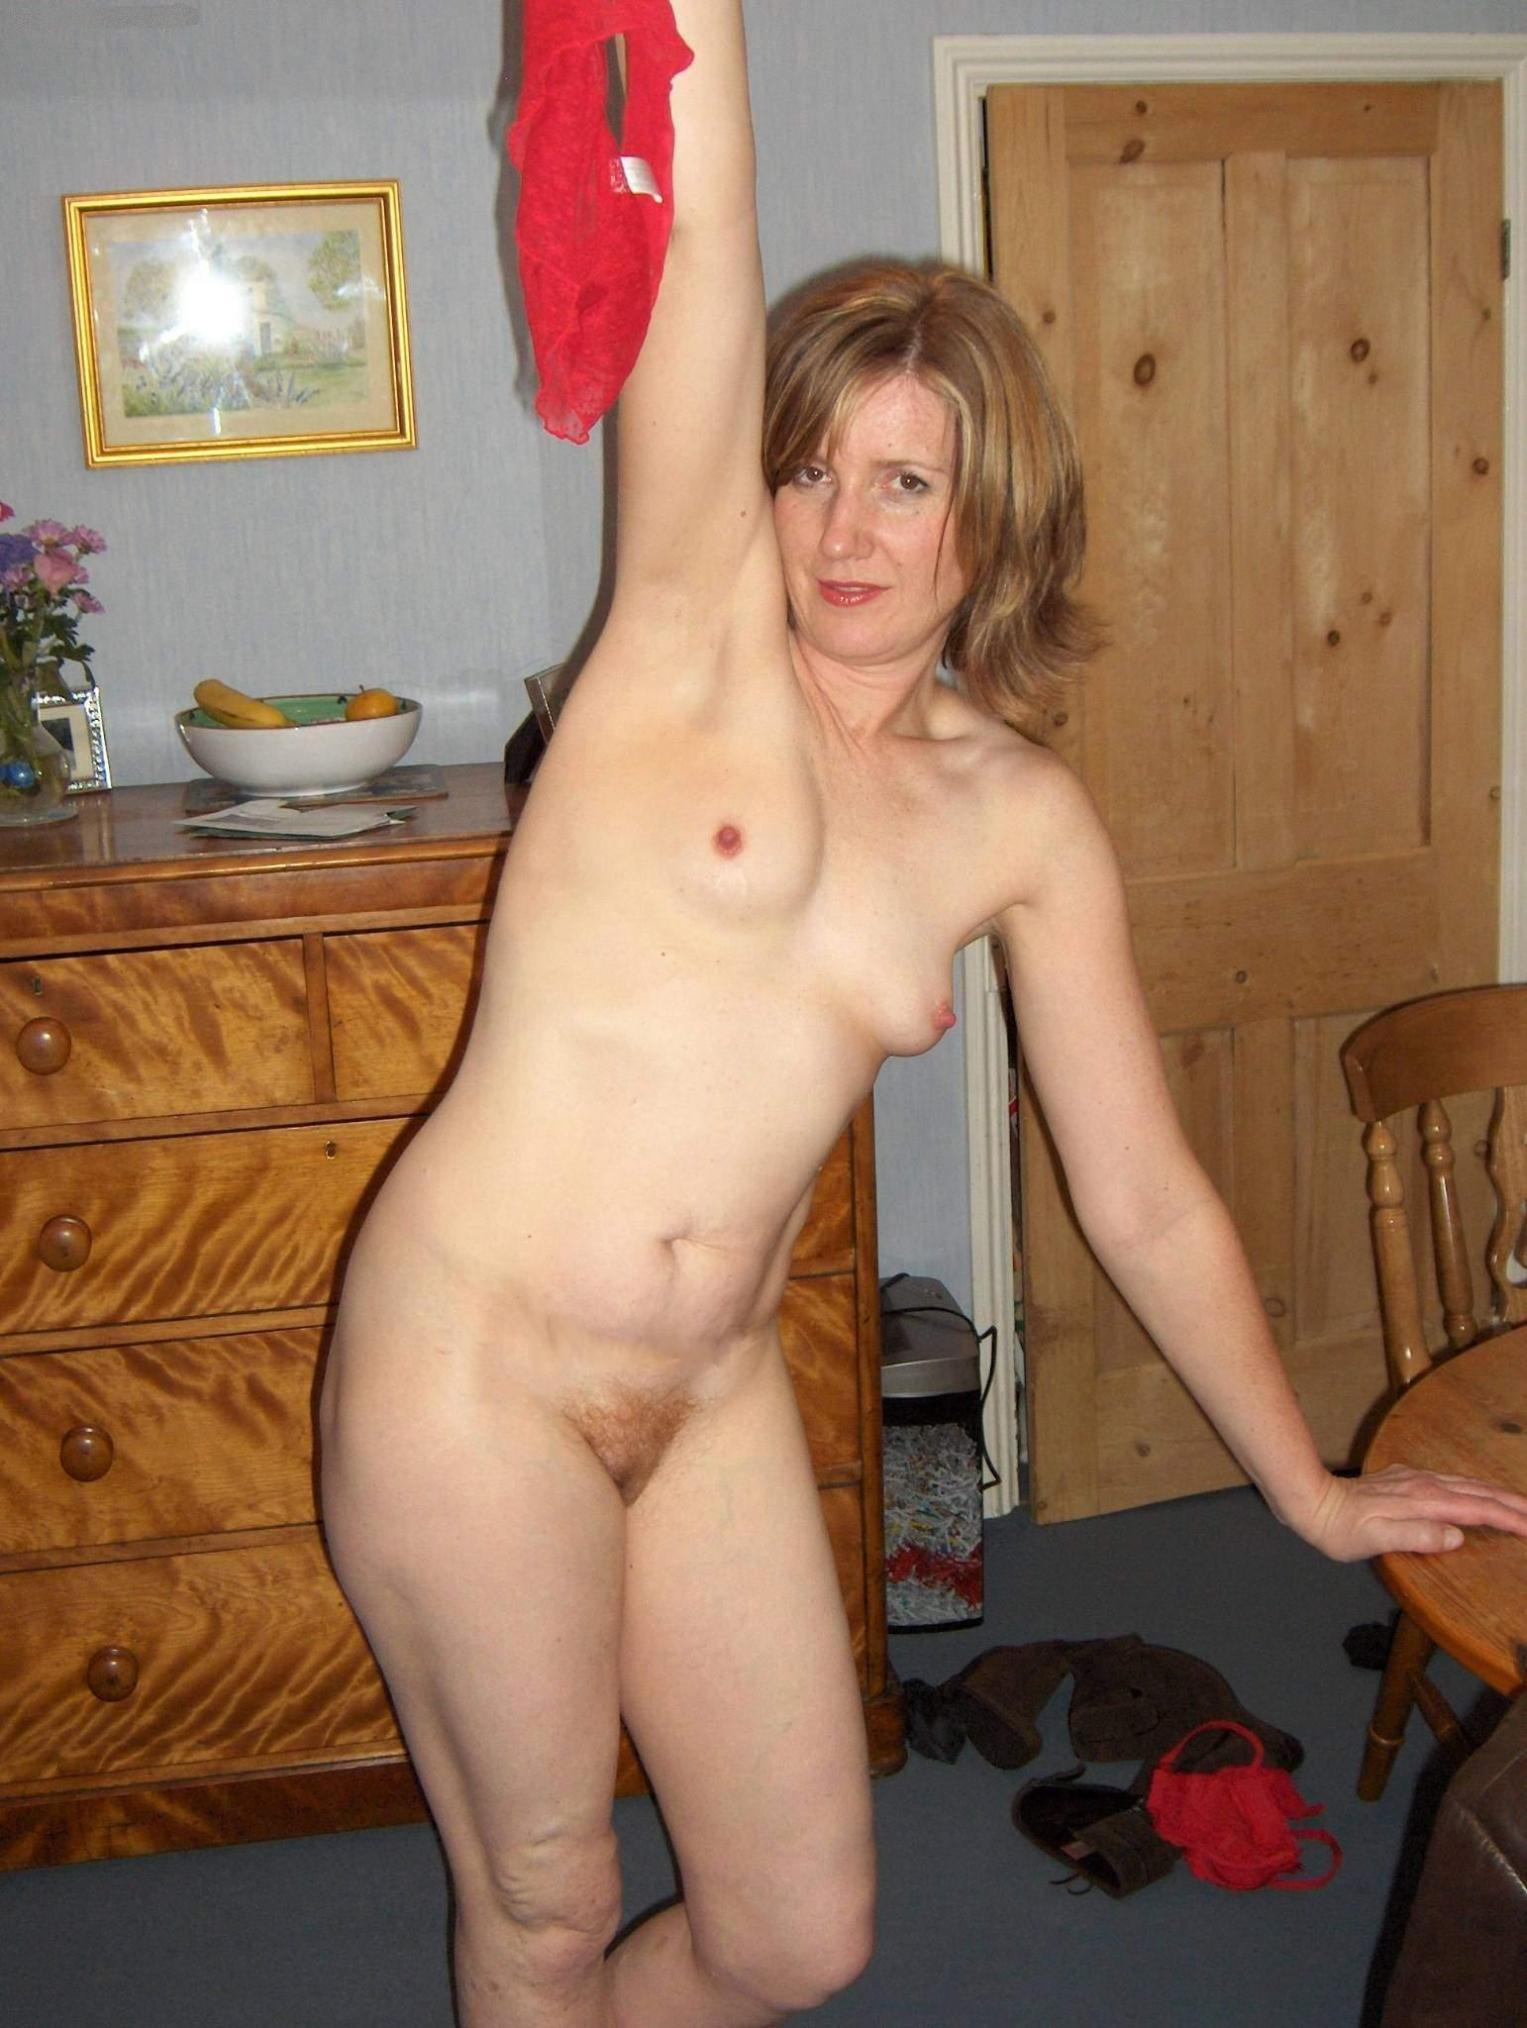 Allover50Milf brunette czech casting milf | free download nude photo gallery